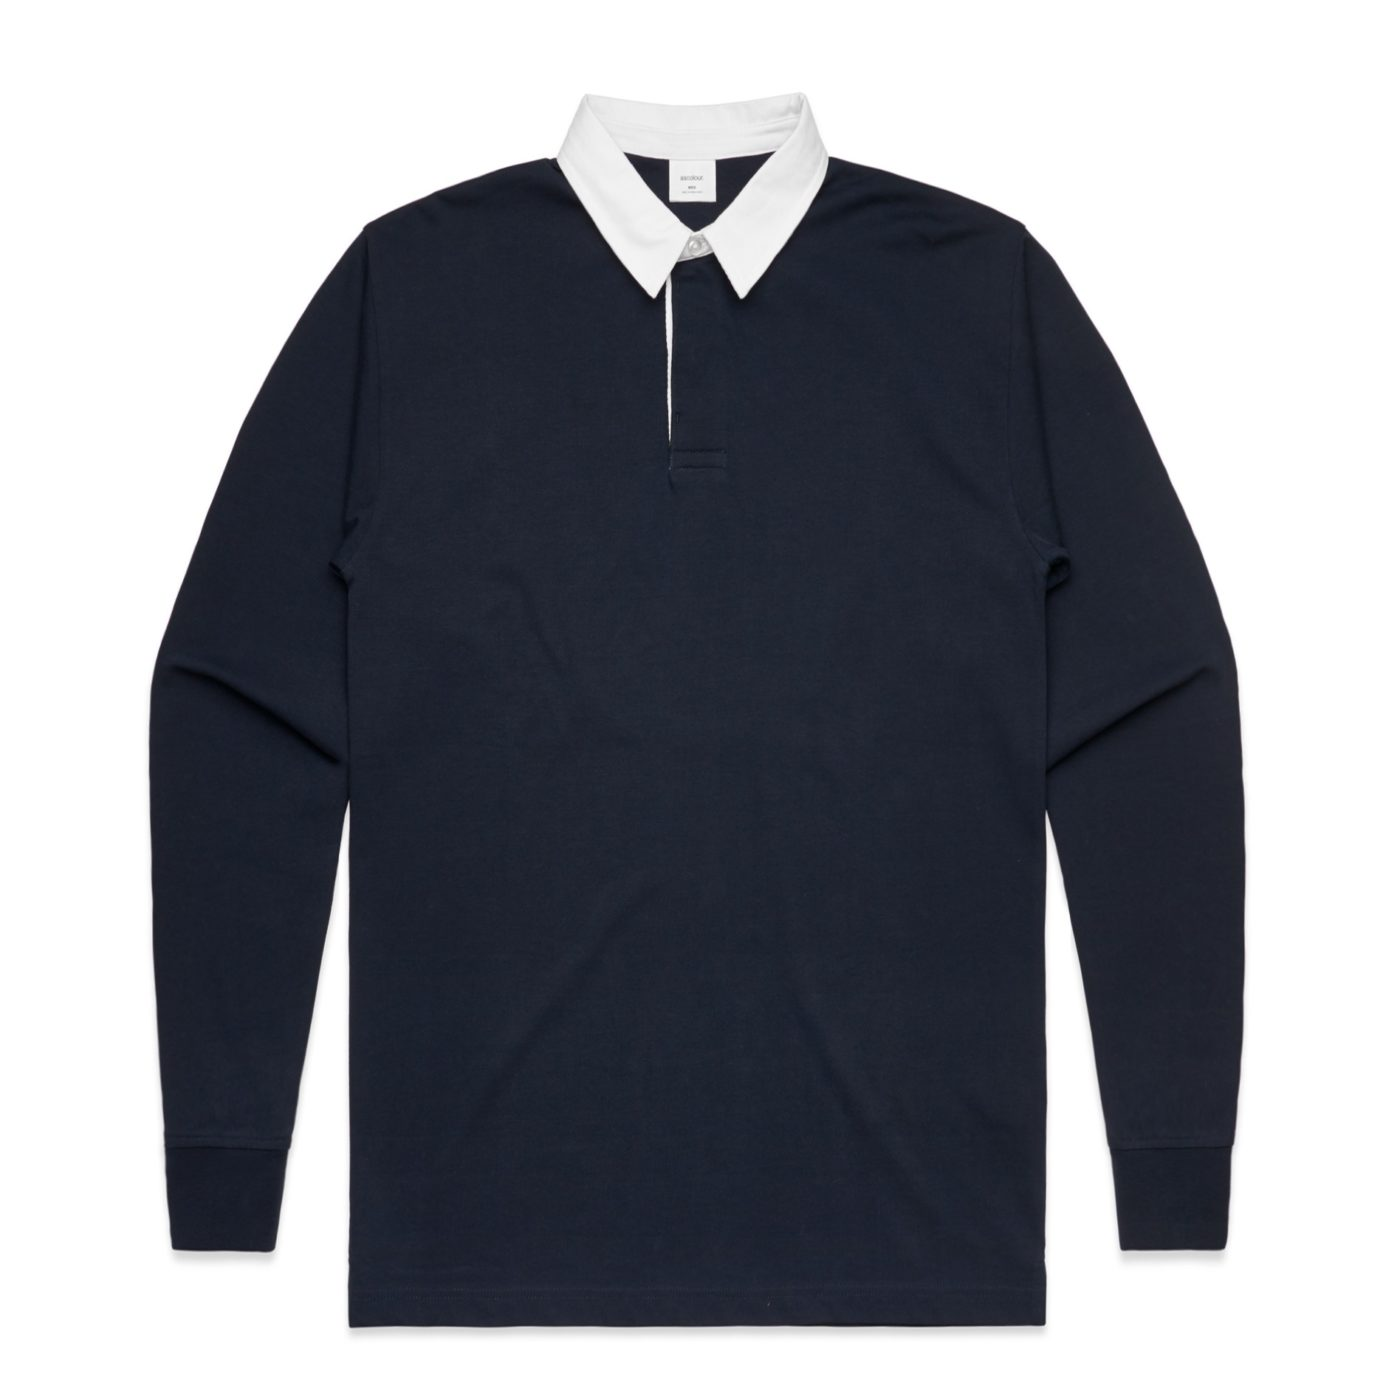 L/S Rugby jersey AS Colour Navy